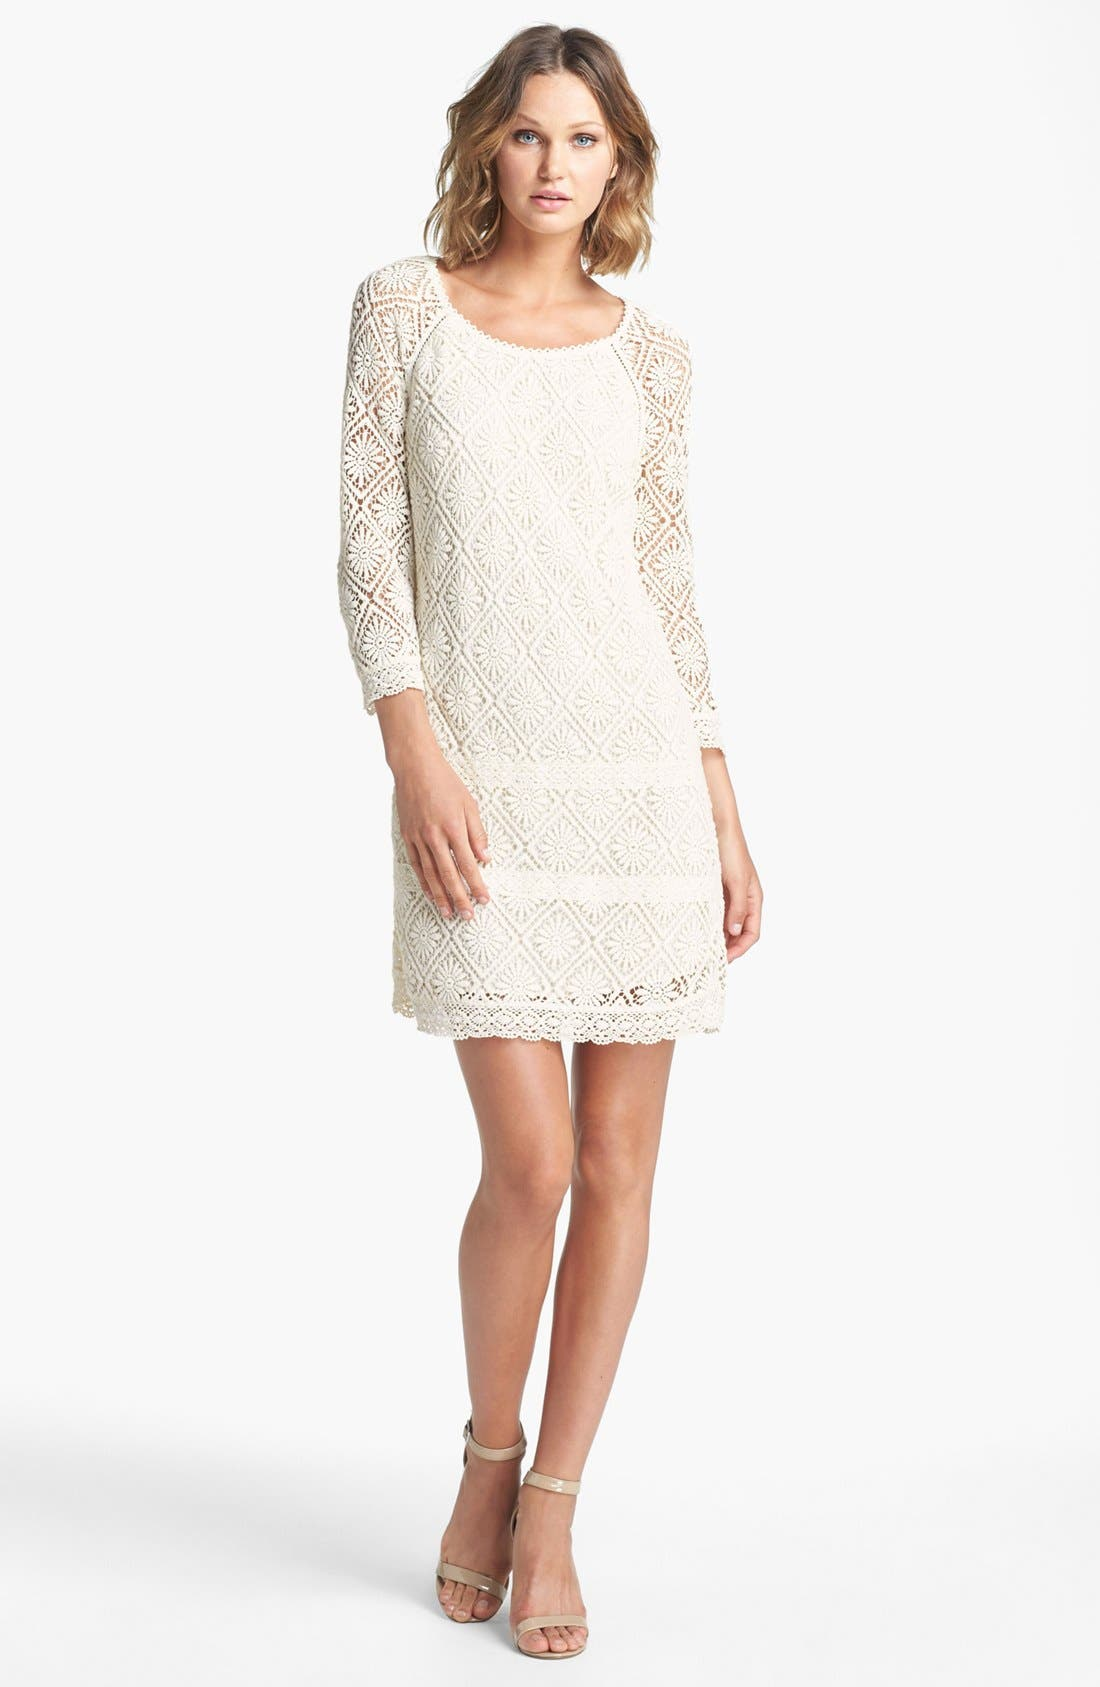 Alternate Image 1 Selected - Juicy Couture 'Grace' Lace Dress